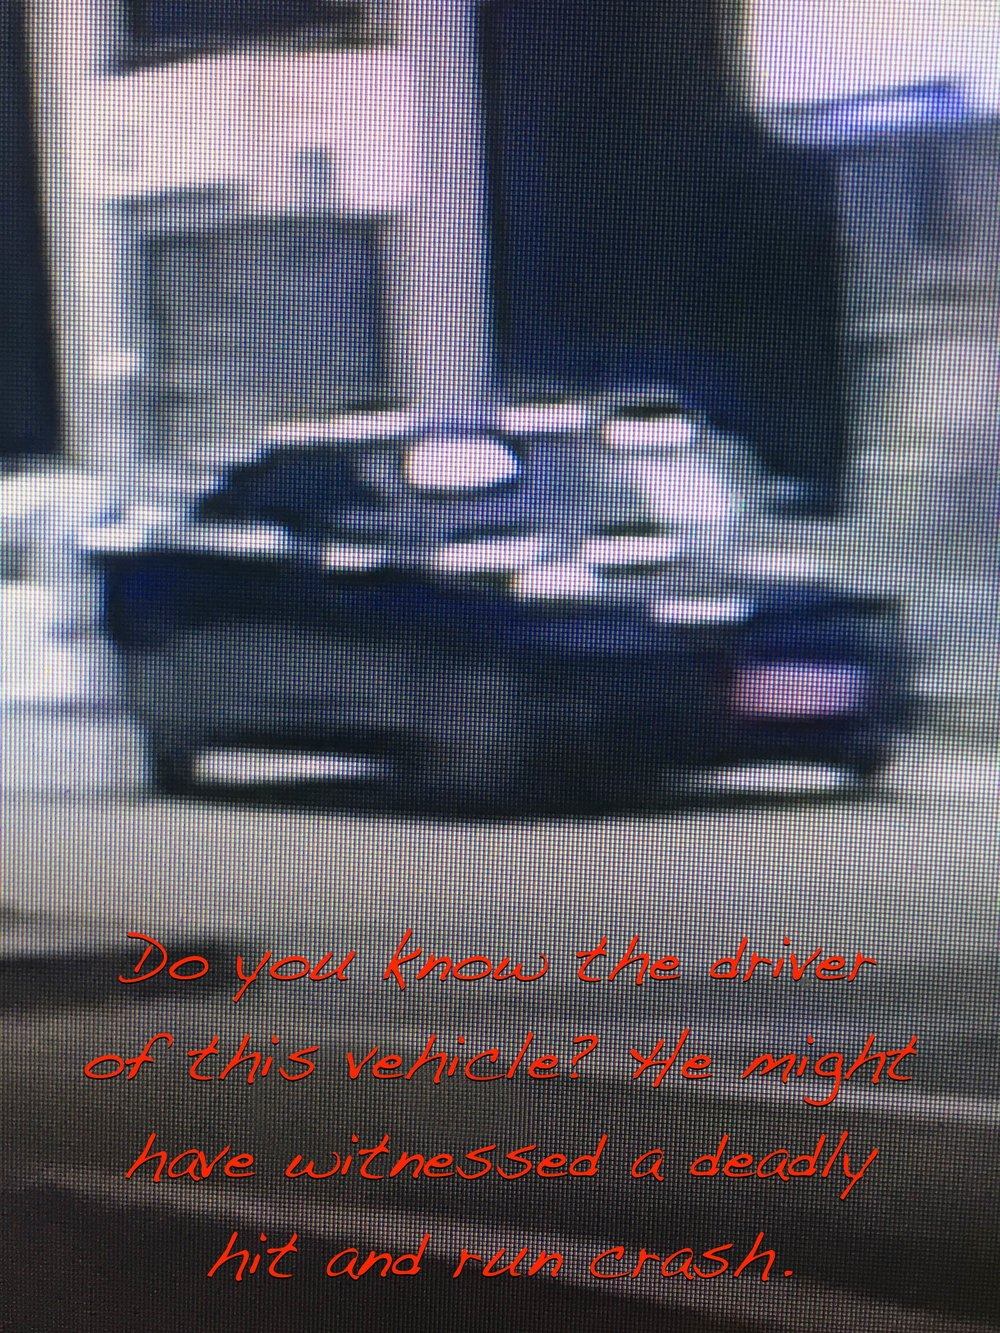 Woodville Hit and Run Witness - Image 3.jpg